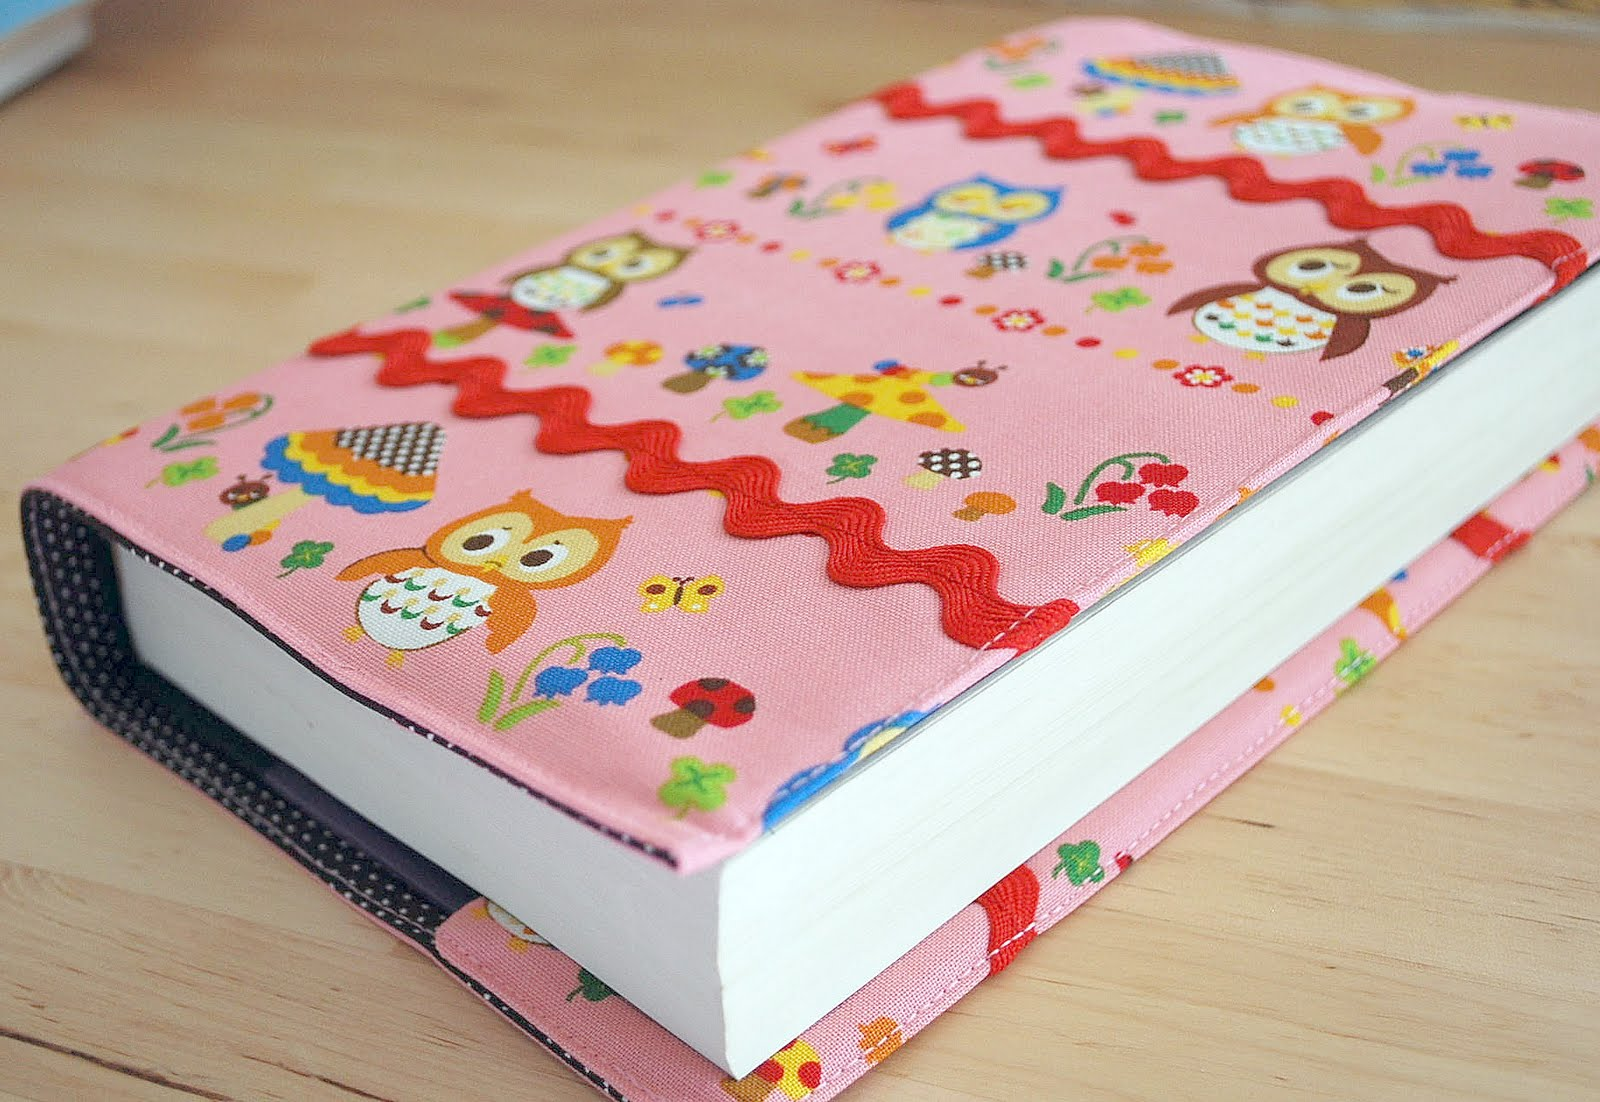 Sew Fabric Book Cover Tutorial : All awesome links sew a fabric book cover